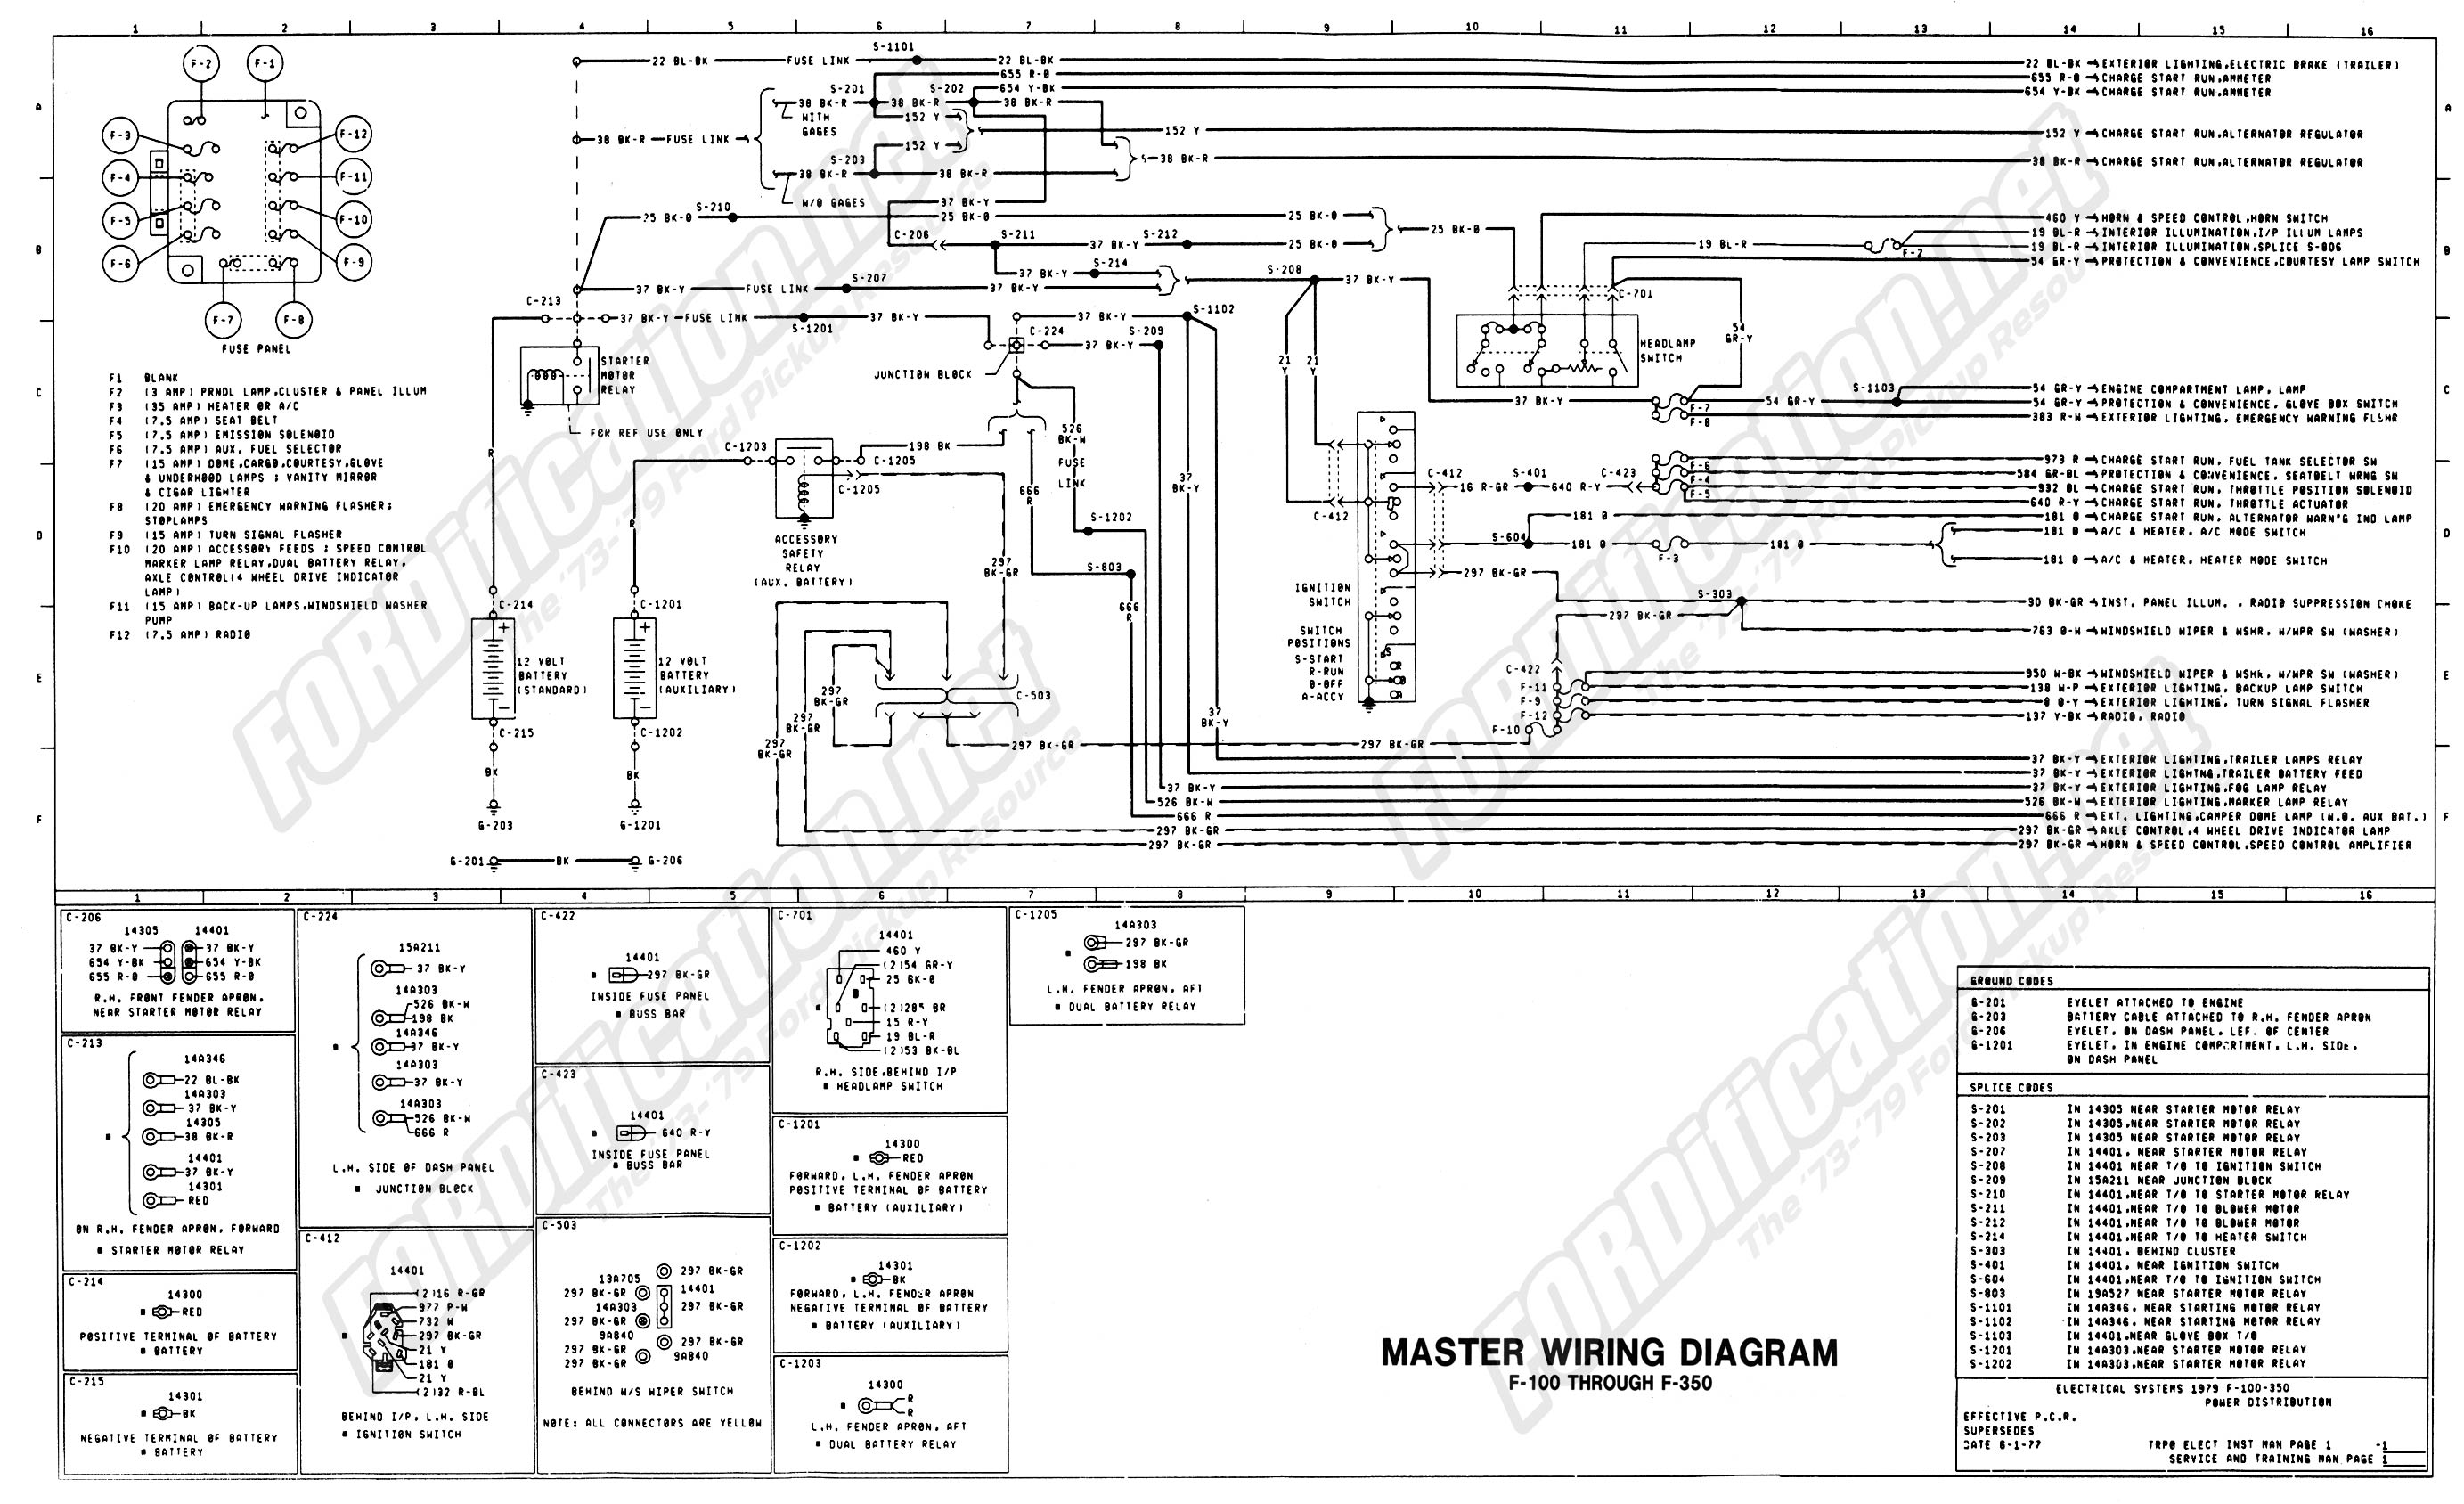 wiring_79master_1of9 1973 1979 ford truck wiring diagrams & schematics fordification net 1979 ford truck fuse box diagram at gsmportal.co